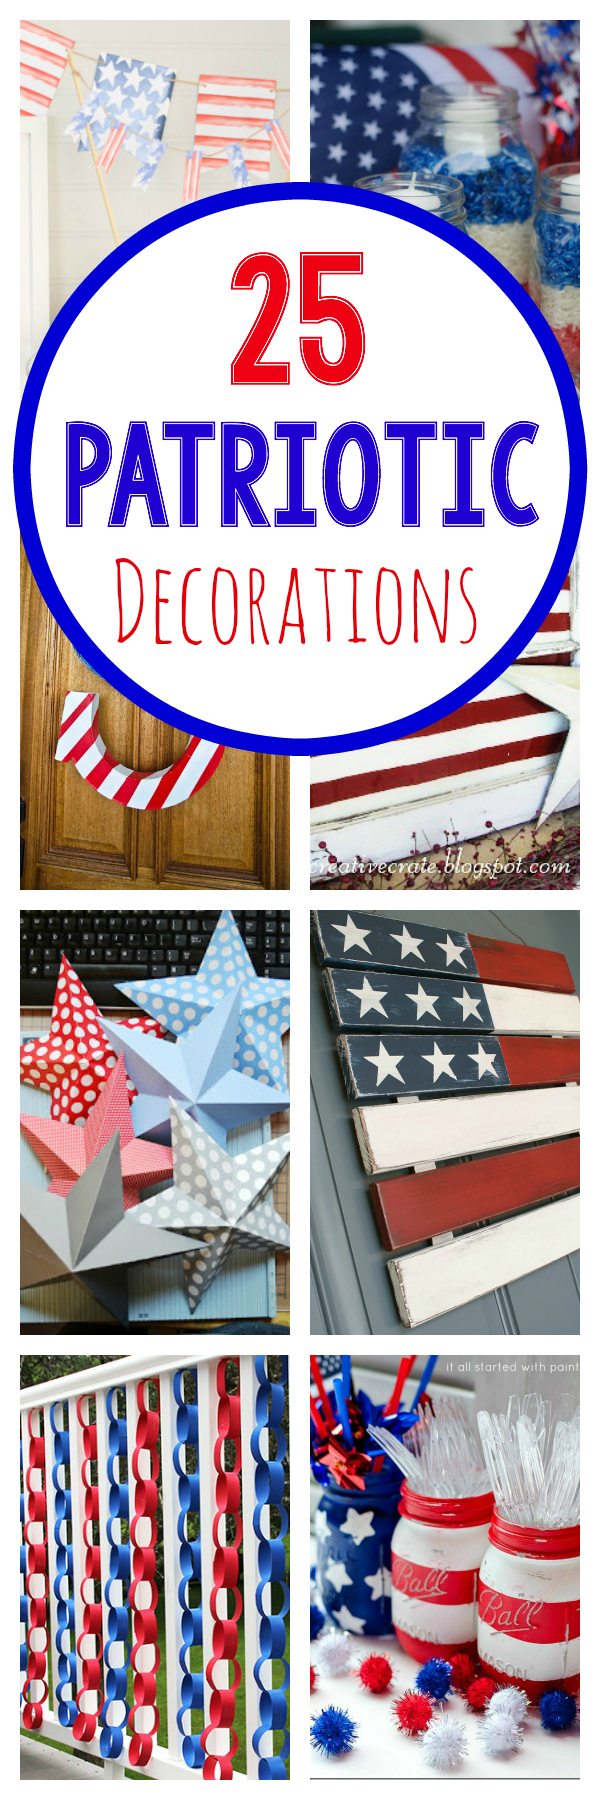 25 Patriotic Decorations to Make